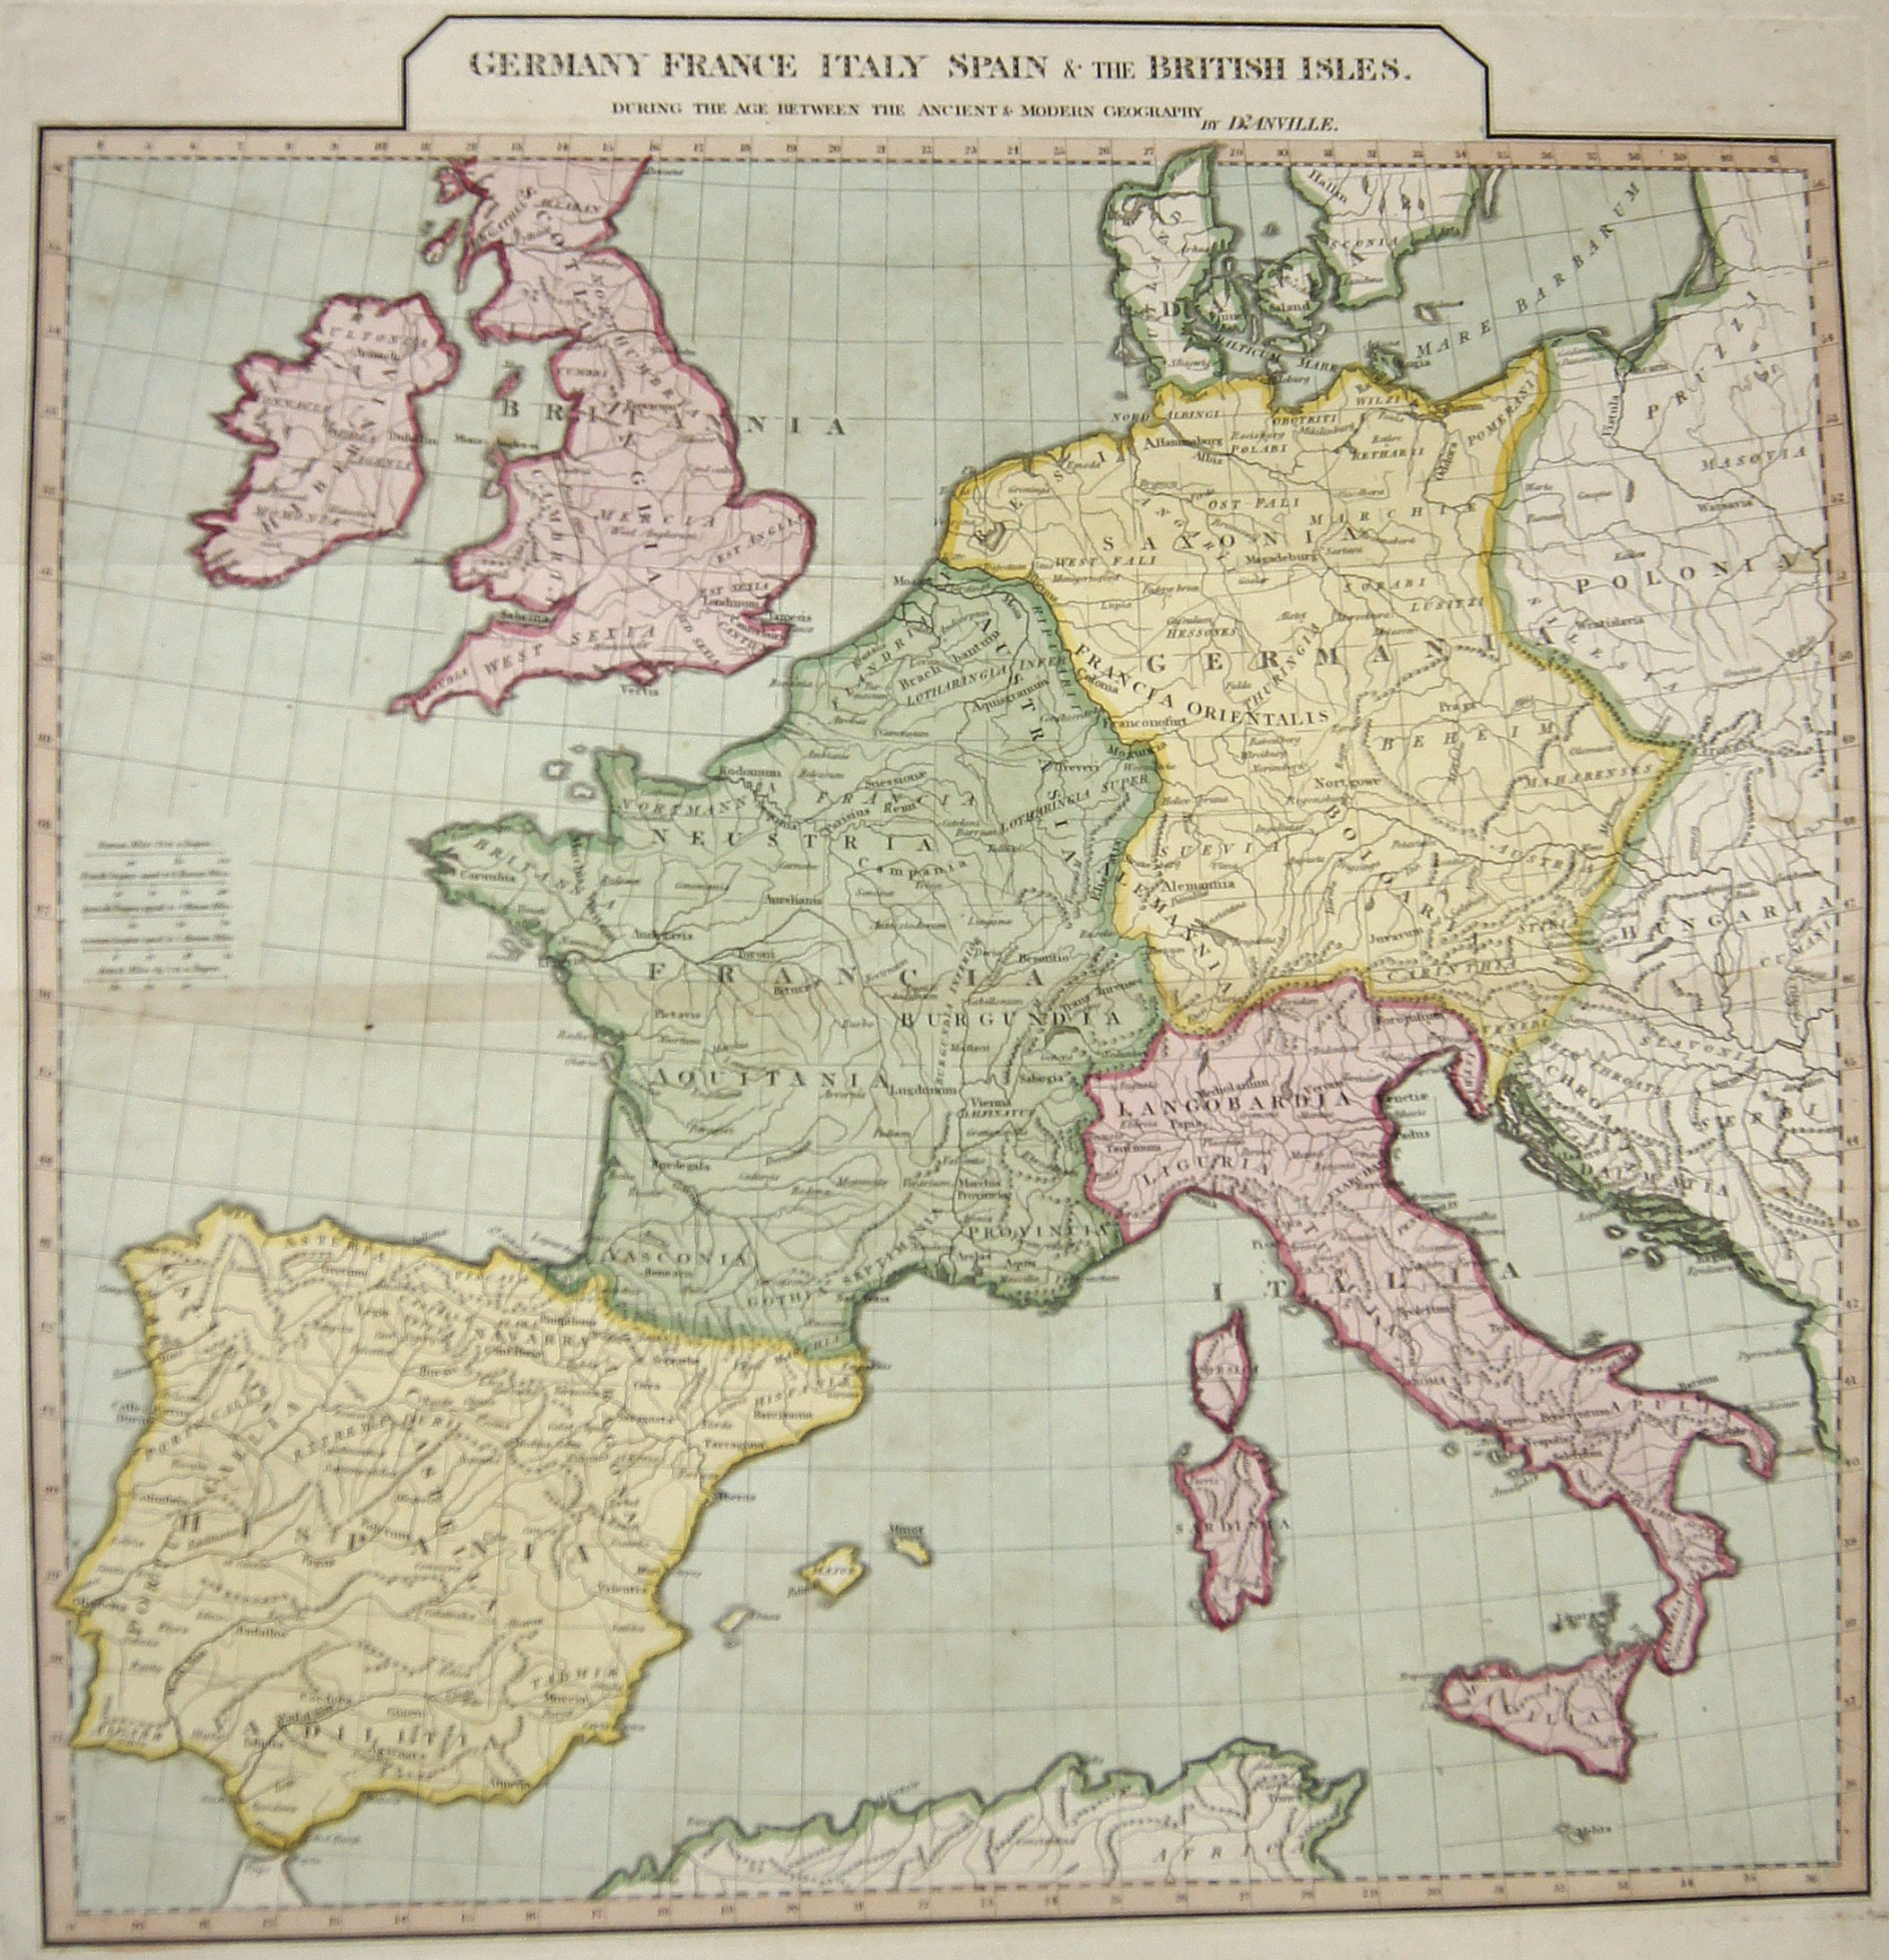 Anville´d Jean Babtiste Germany France Italy Spain & the British Isles.